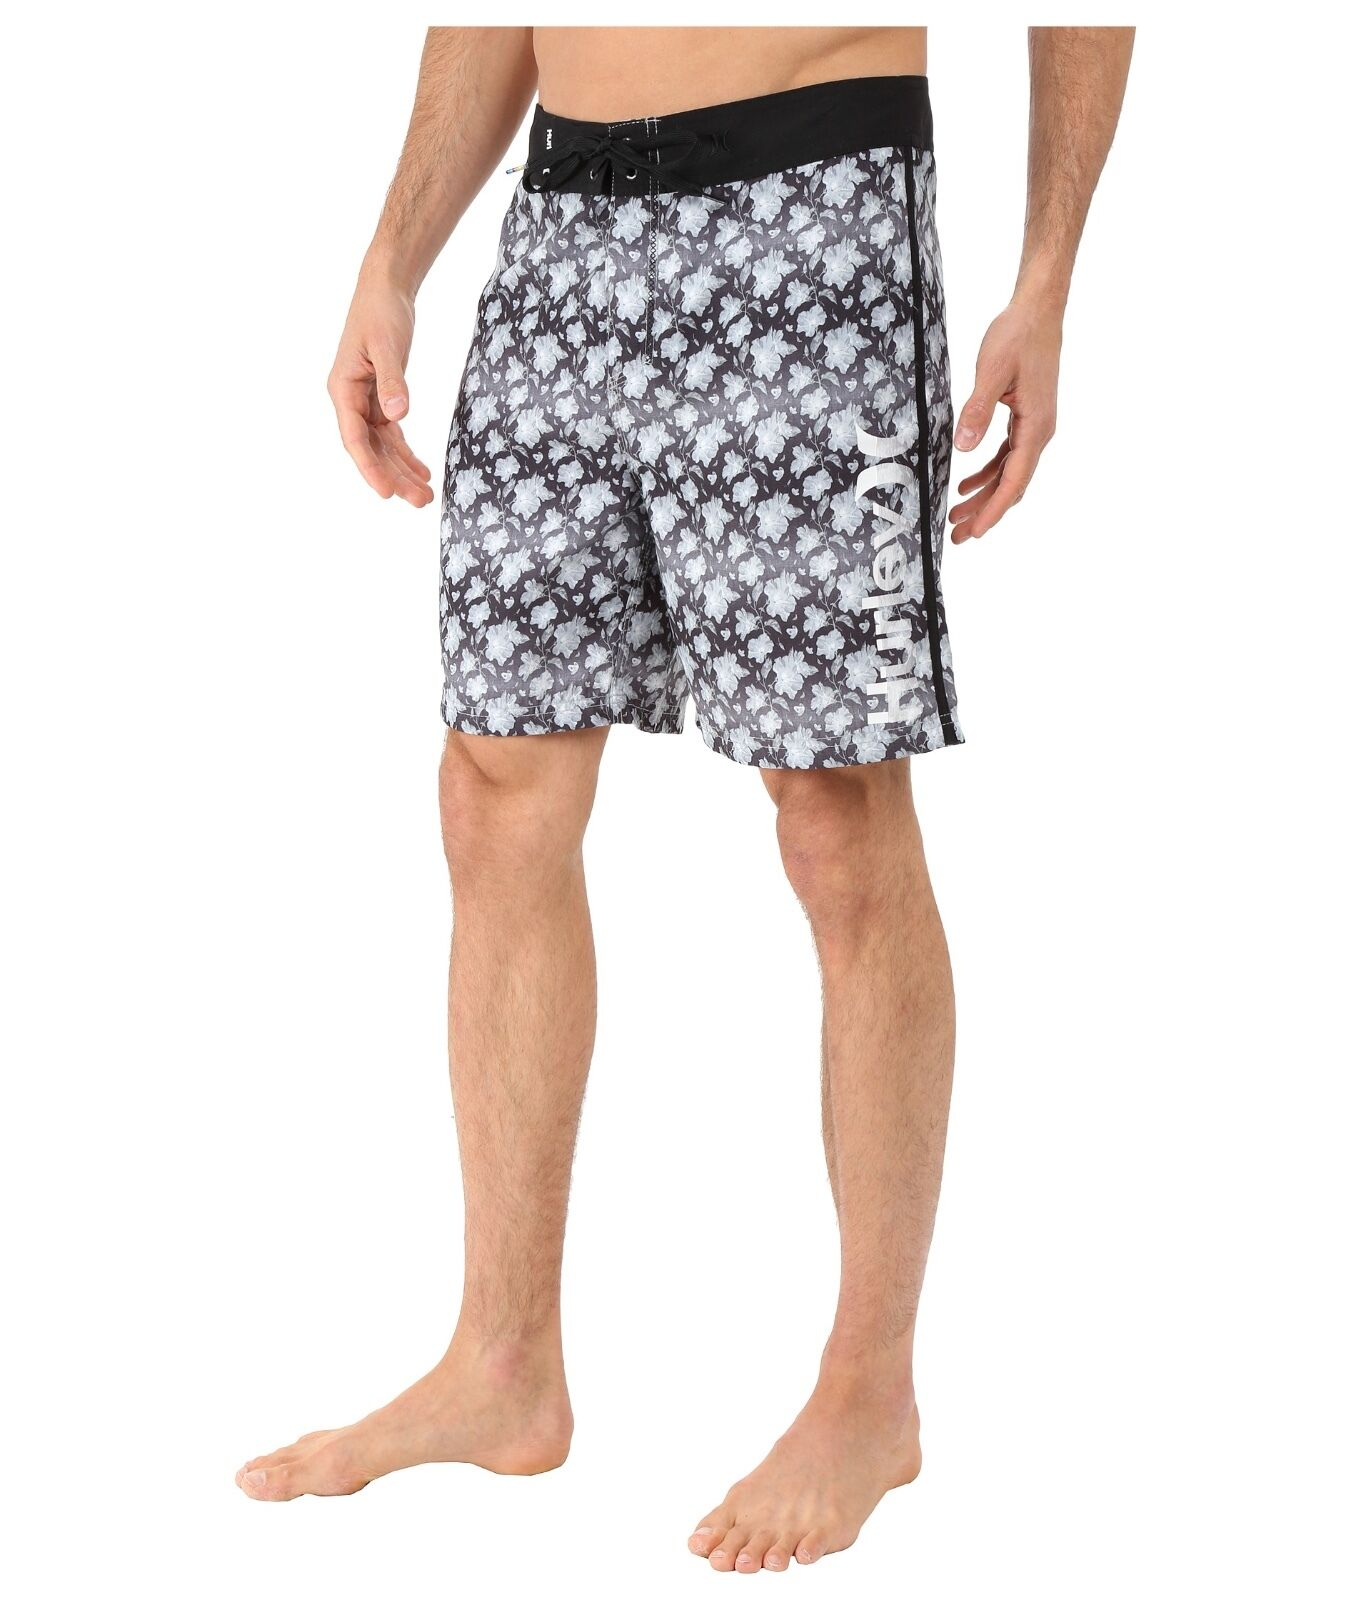 Hurley Mens Micro Boardshorts Surf Swim Trunk Swimsuit Bl...